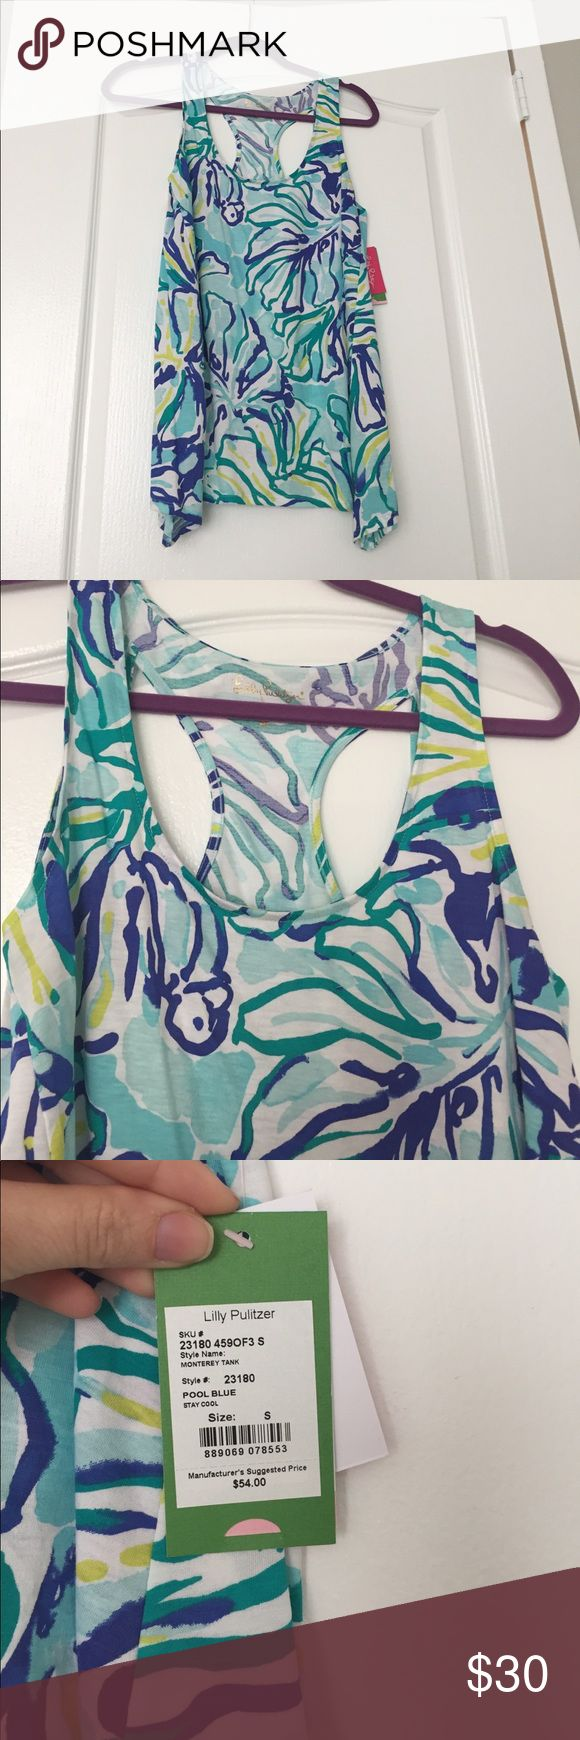 "Lily Pulitzer Monterey Tank Brand new with tags Lily Pulitzer Monterey Tank in ""Pool Blue"" print! A cute racer back style tank top with curved hemline. Super flattering and flowy and the print looks amazing with white jeans or shorts! lily pulitzer Tops Tank Tops"